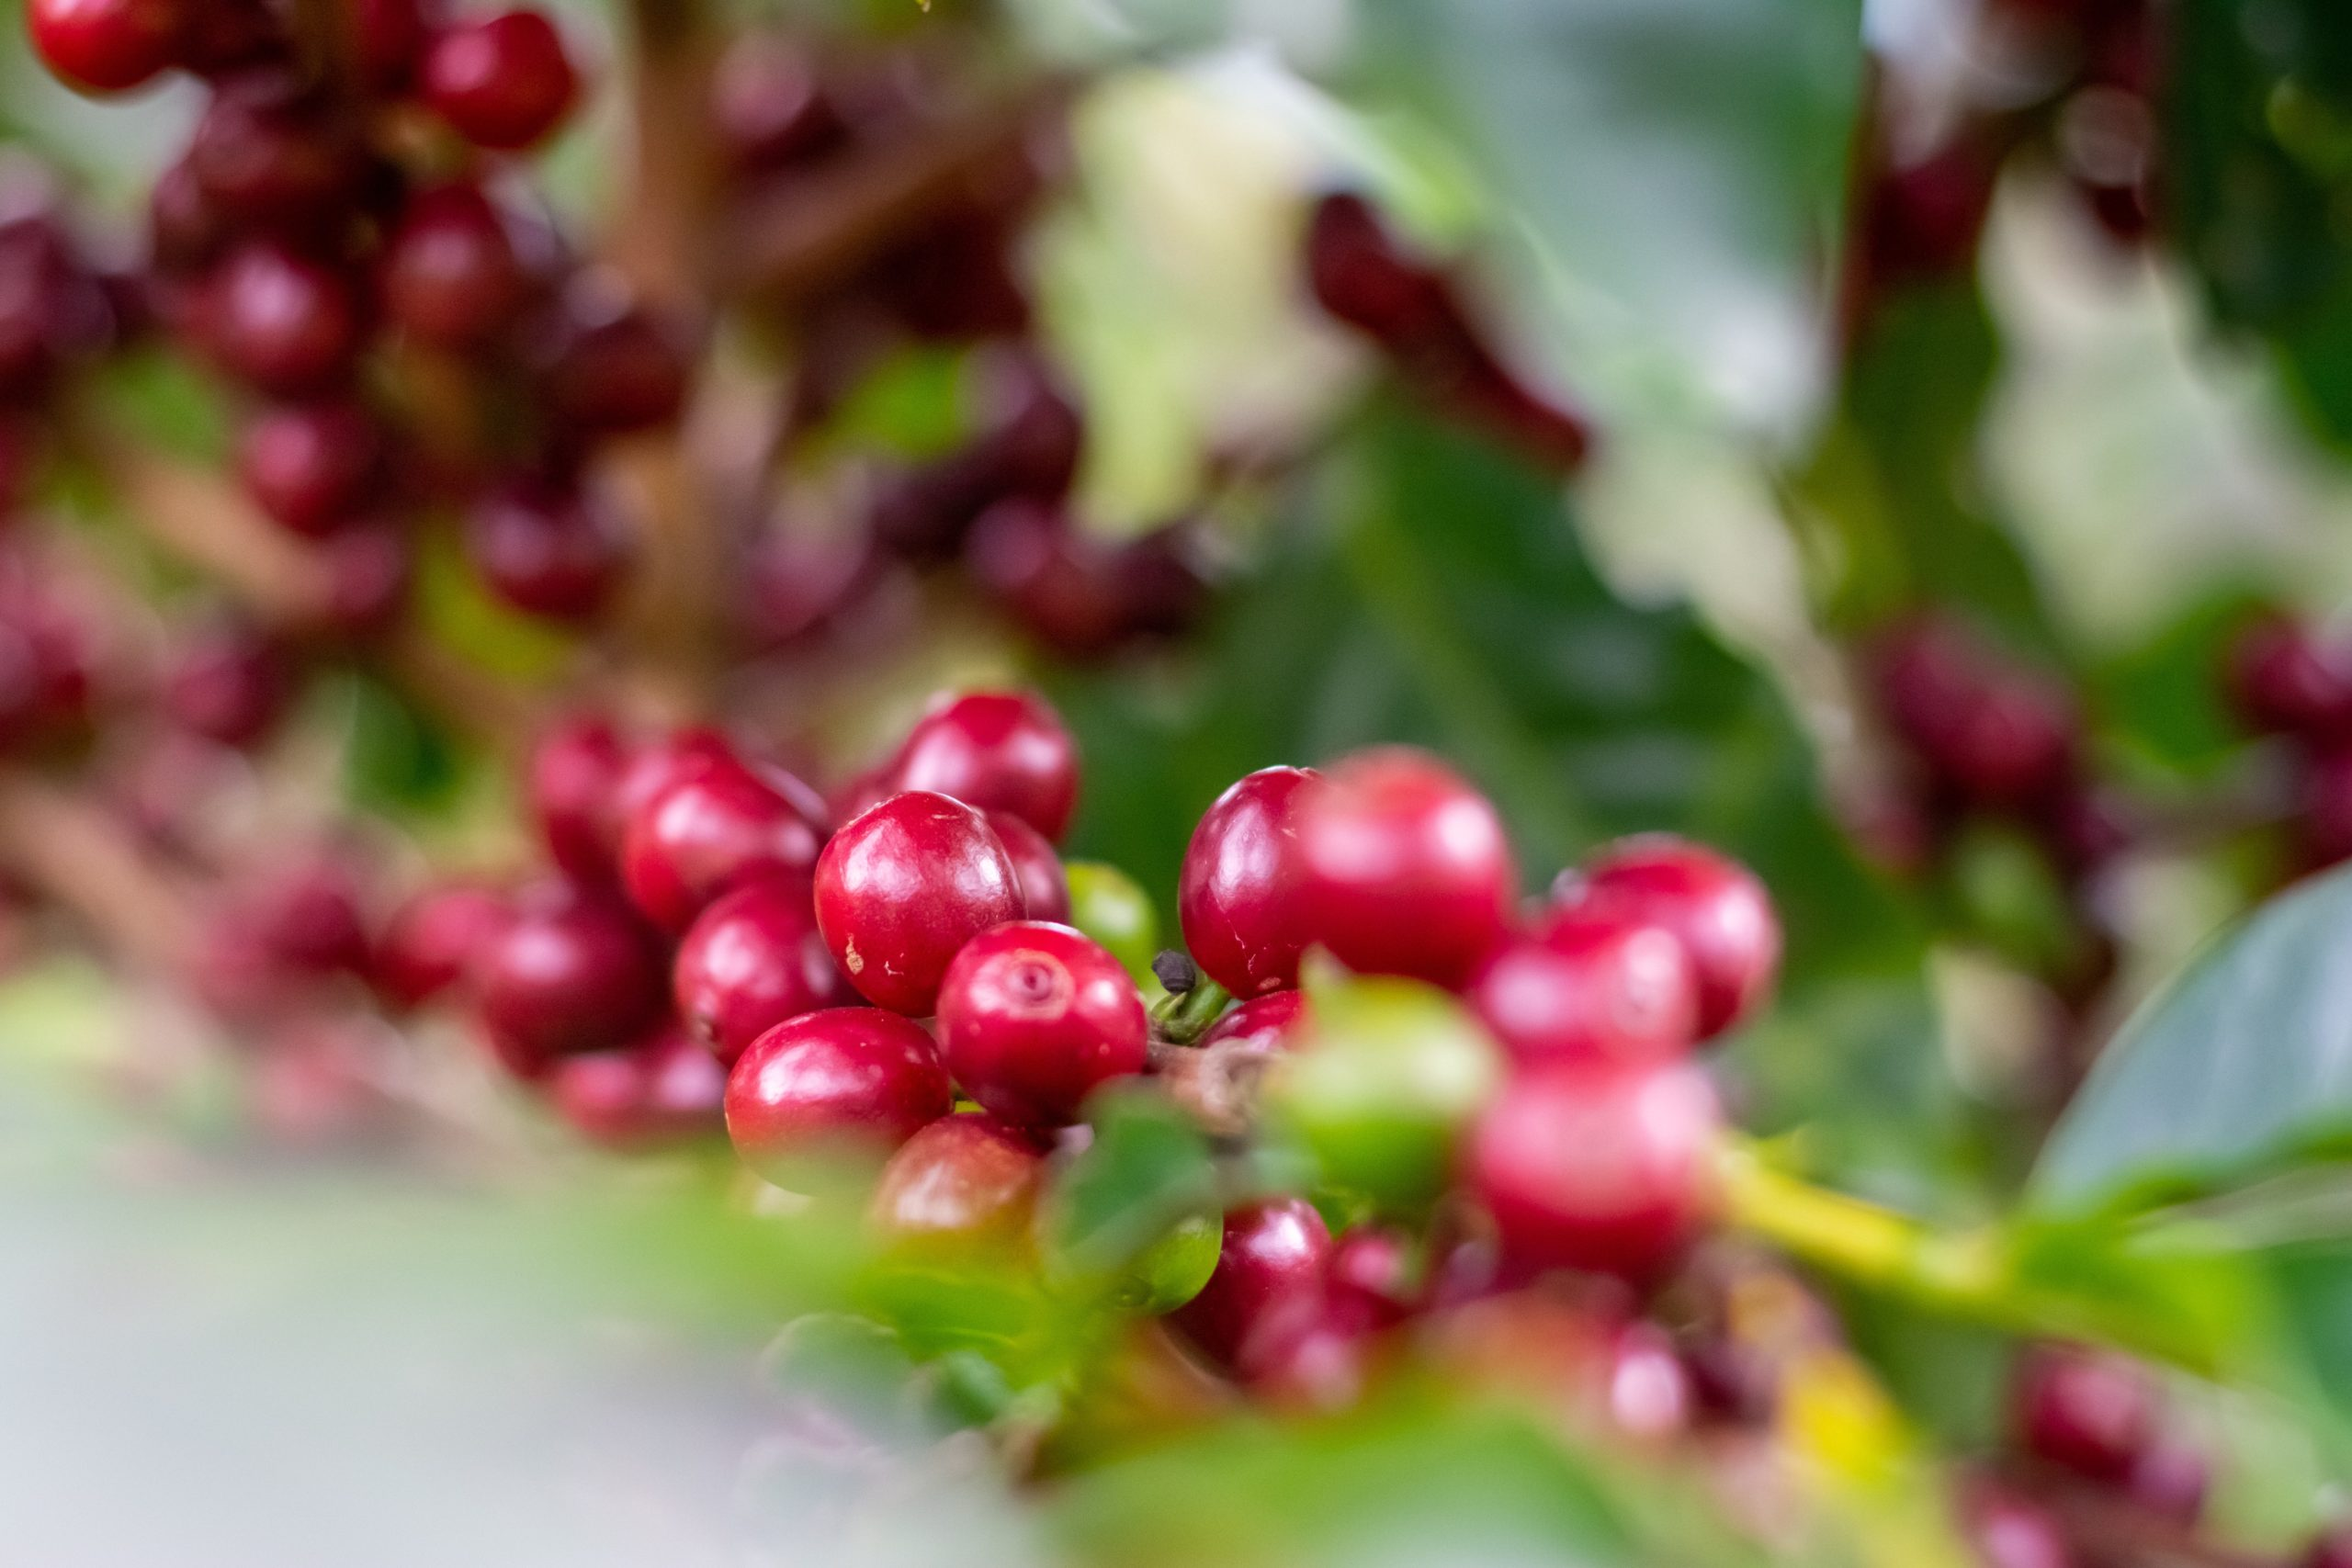 red coffee cherries growing on a tree